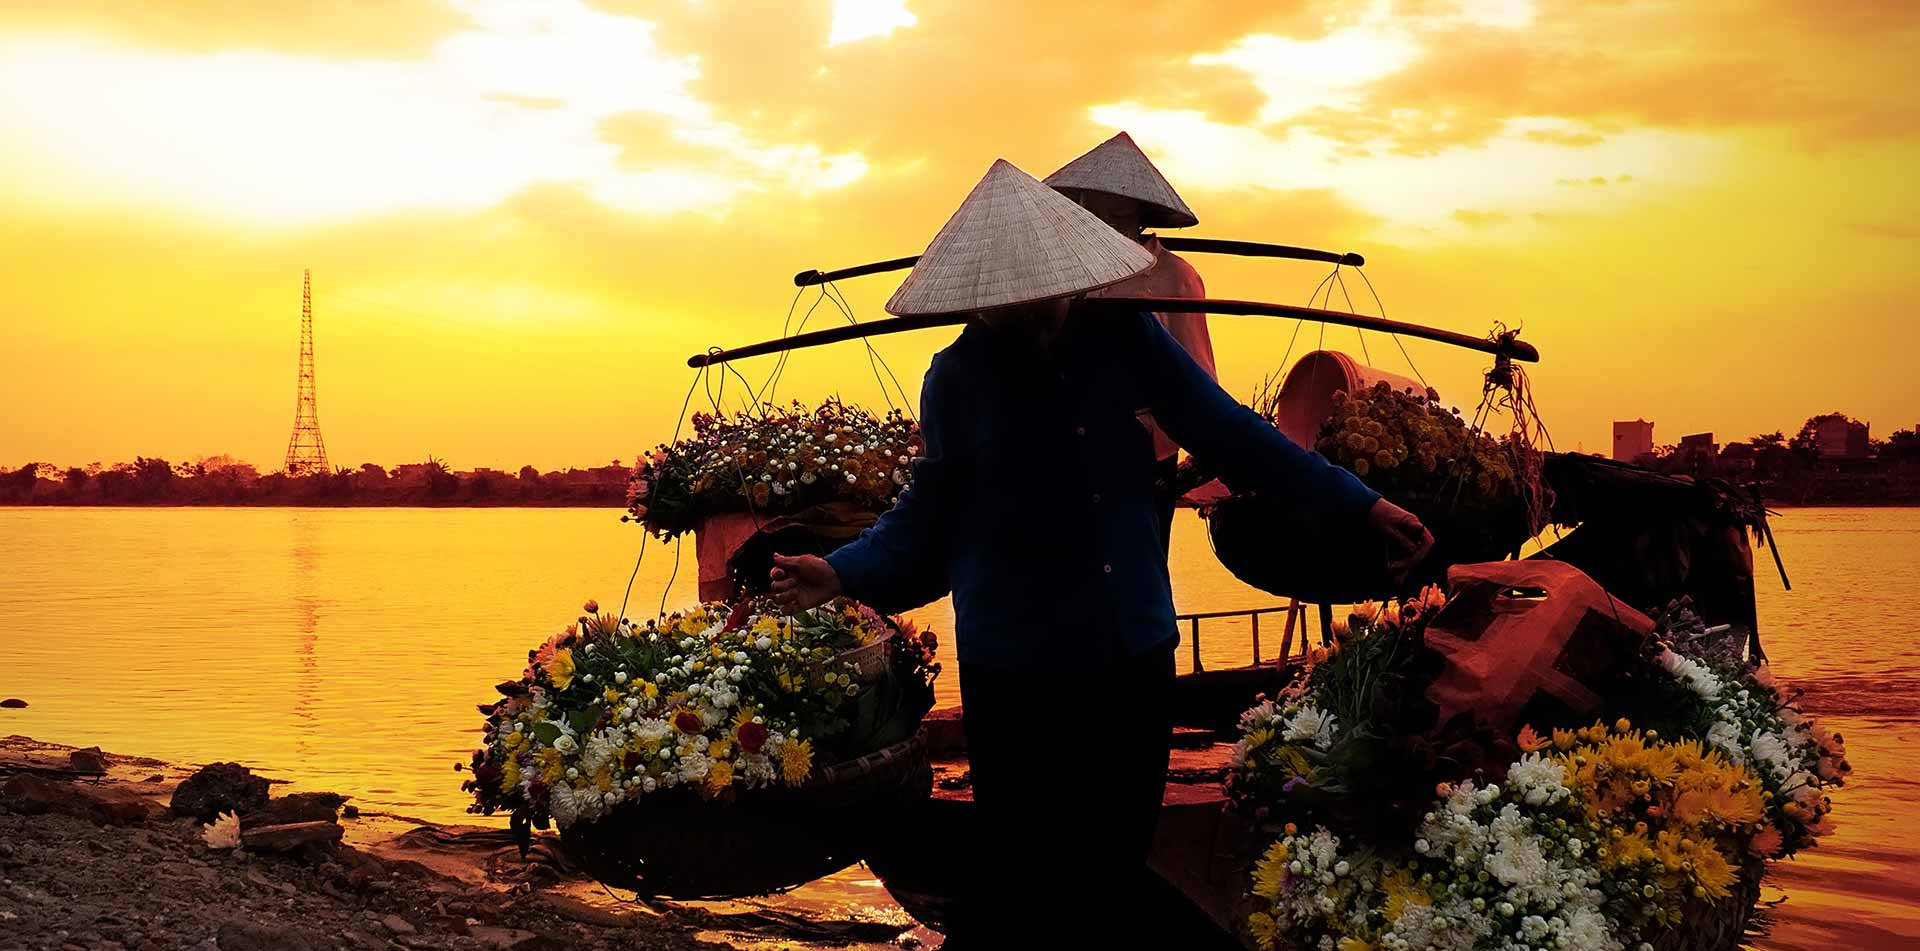 Locals carrying flowers, Vietnam